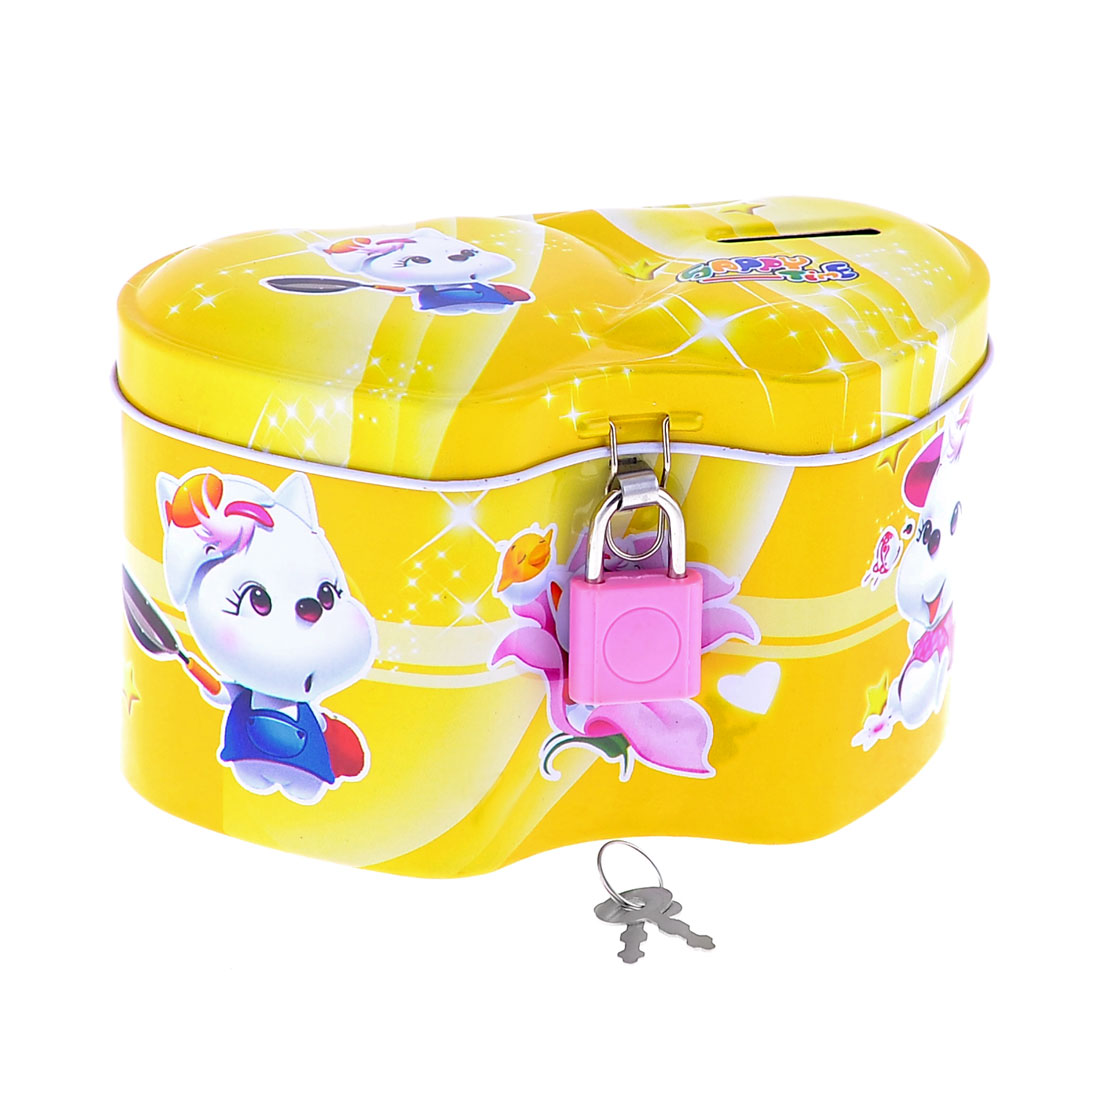 Cartoon Cat Print Heart Link Heart Design Yellow Money Piggy Bank Box